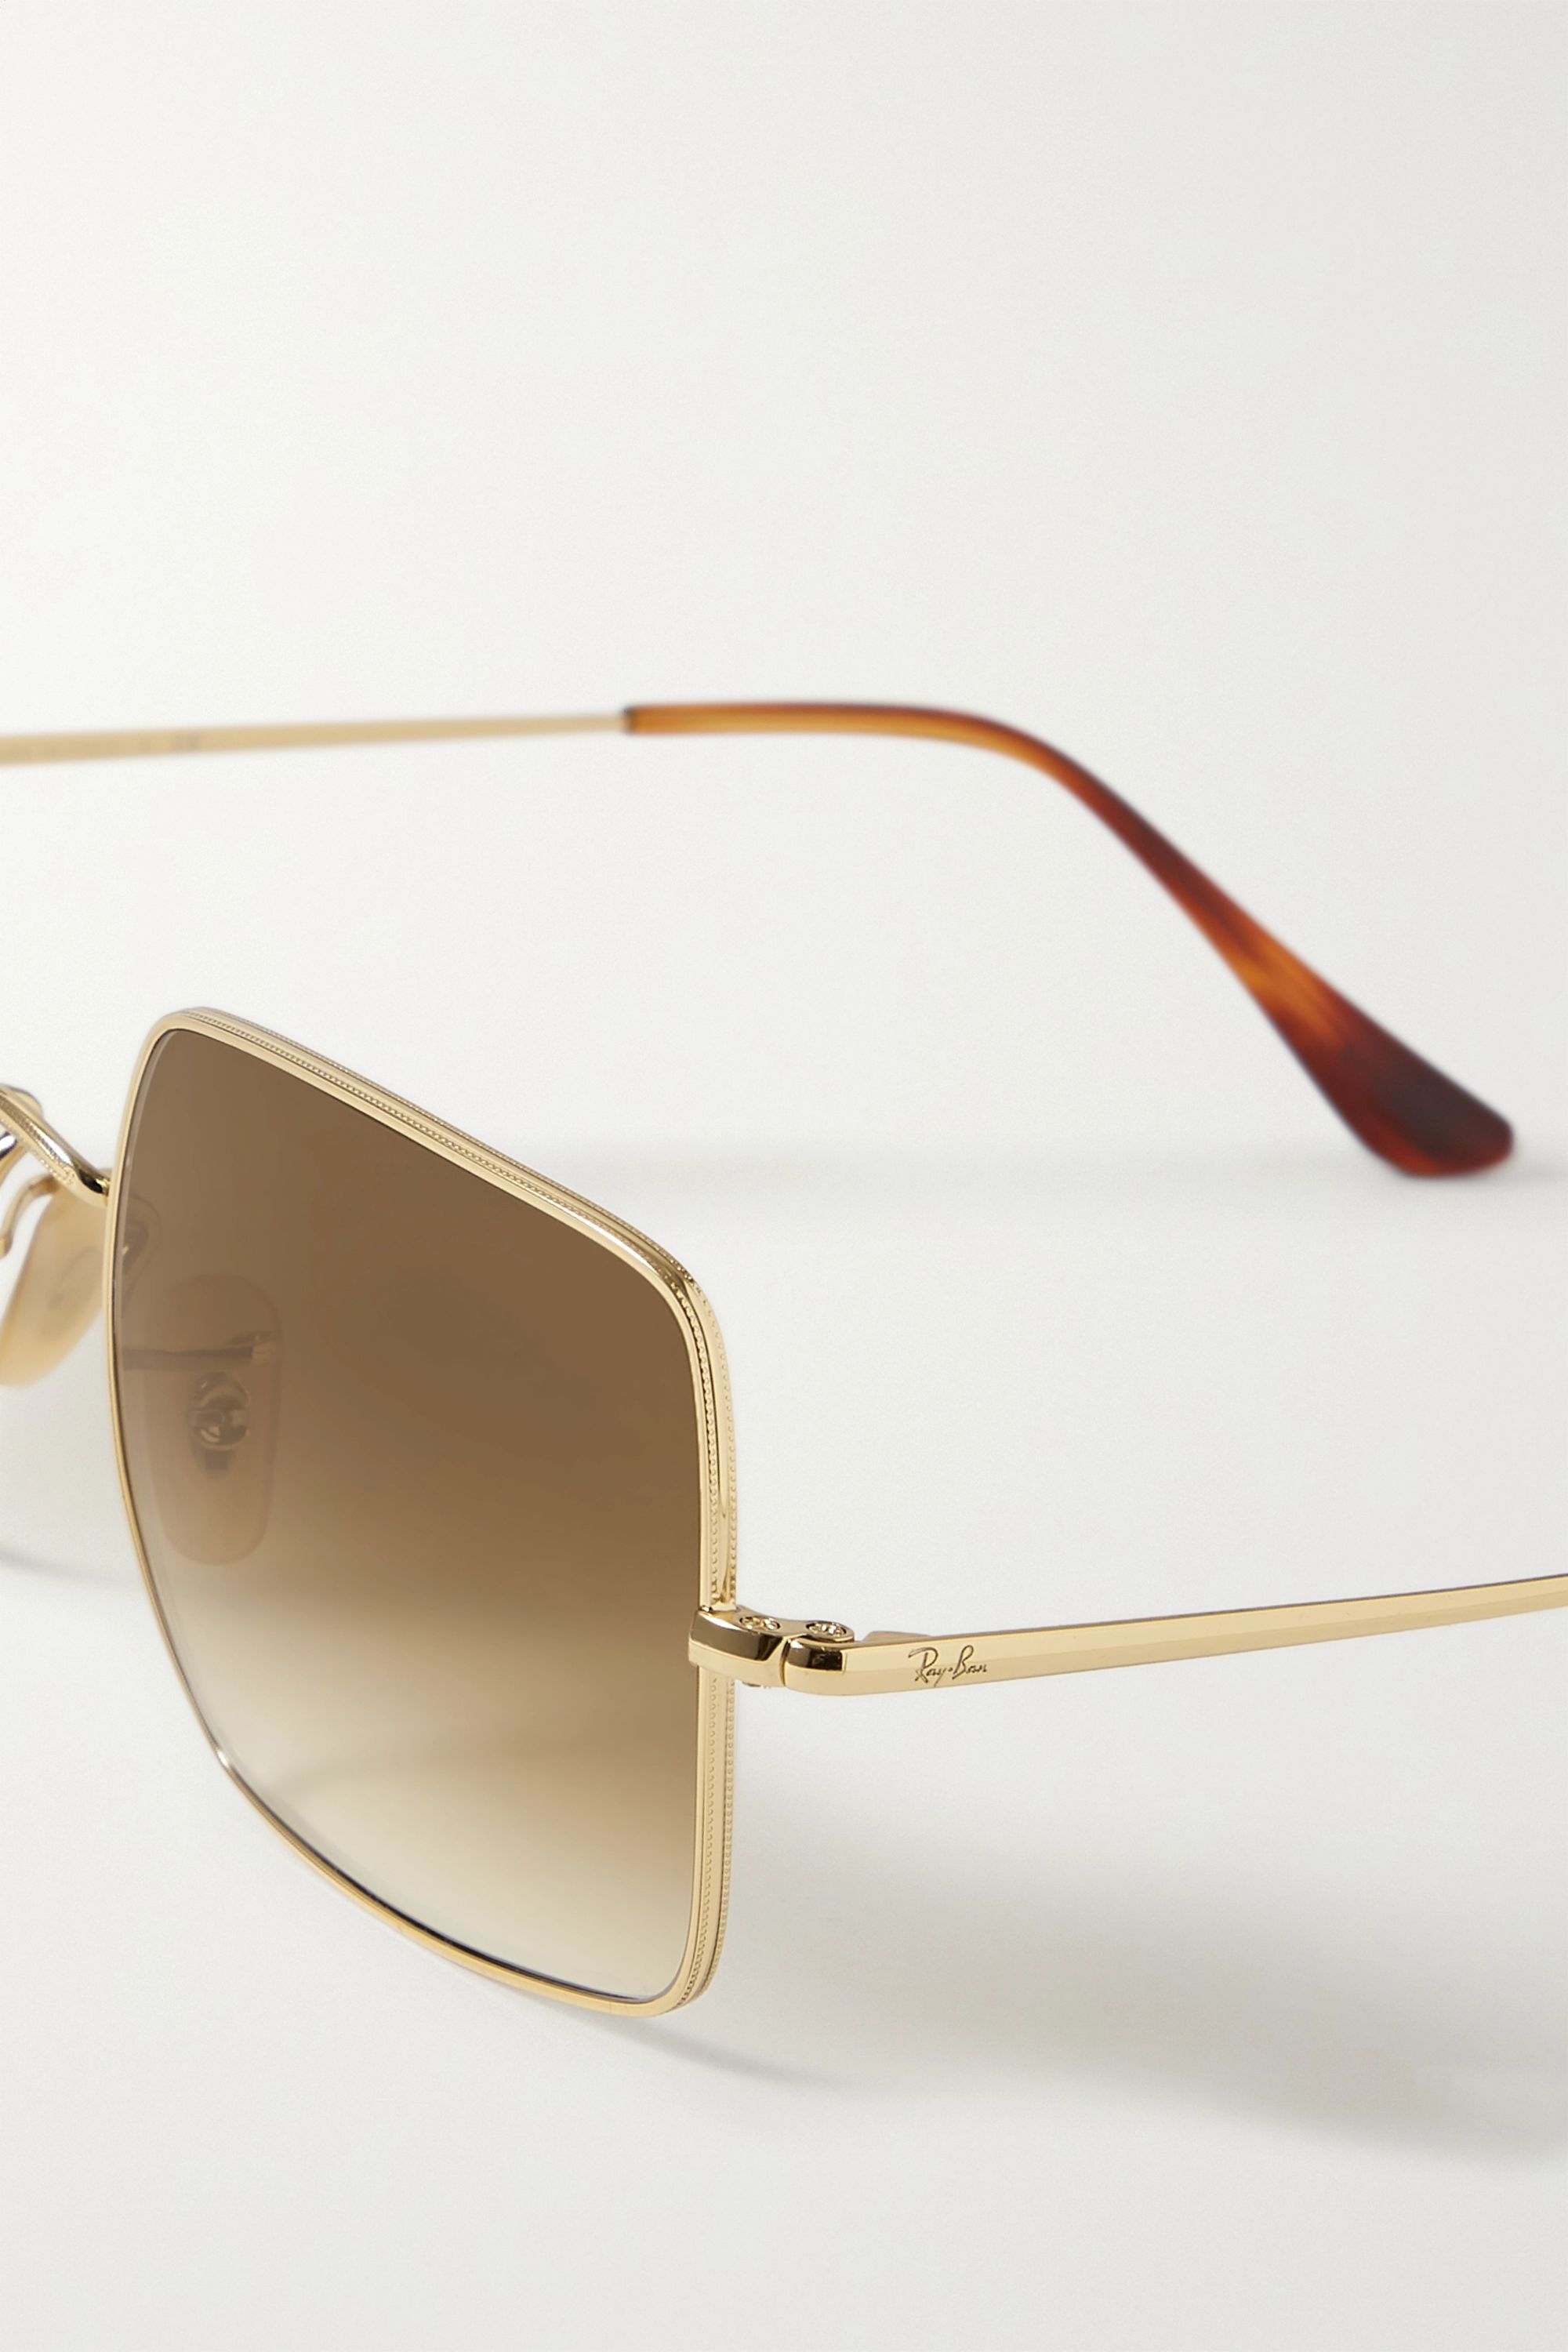 Ray-Ban Square-frame gold-tone sunglasses